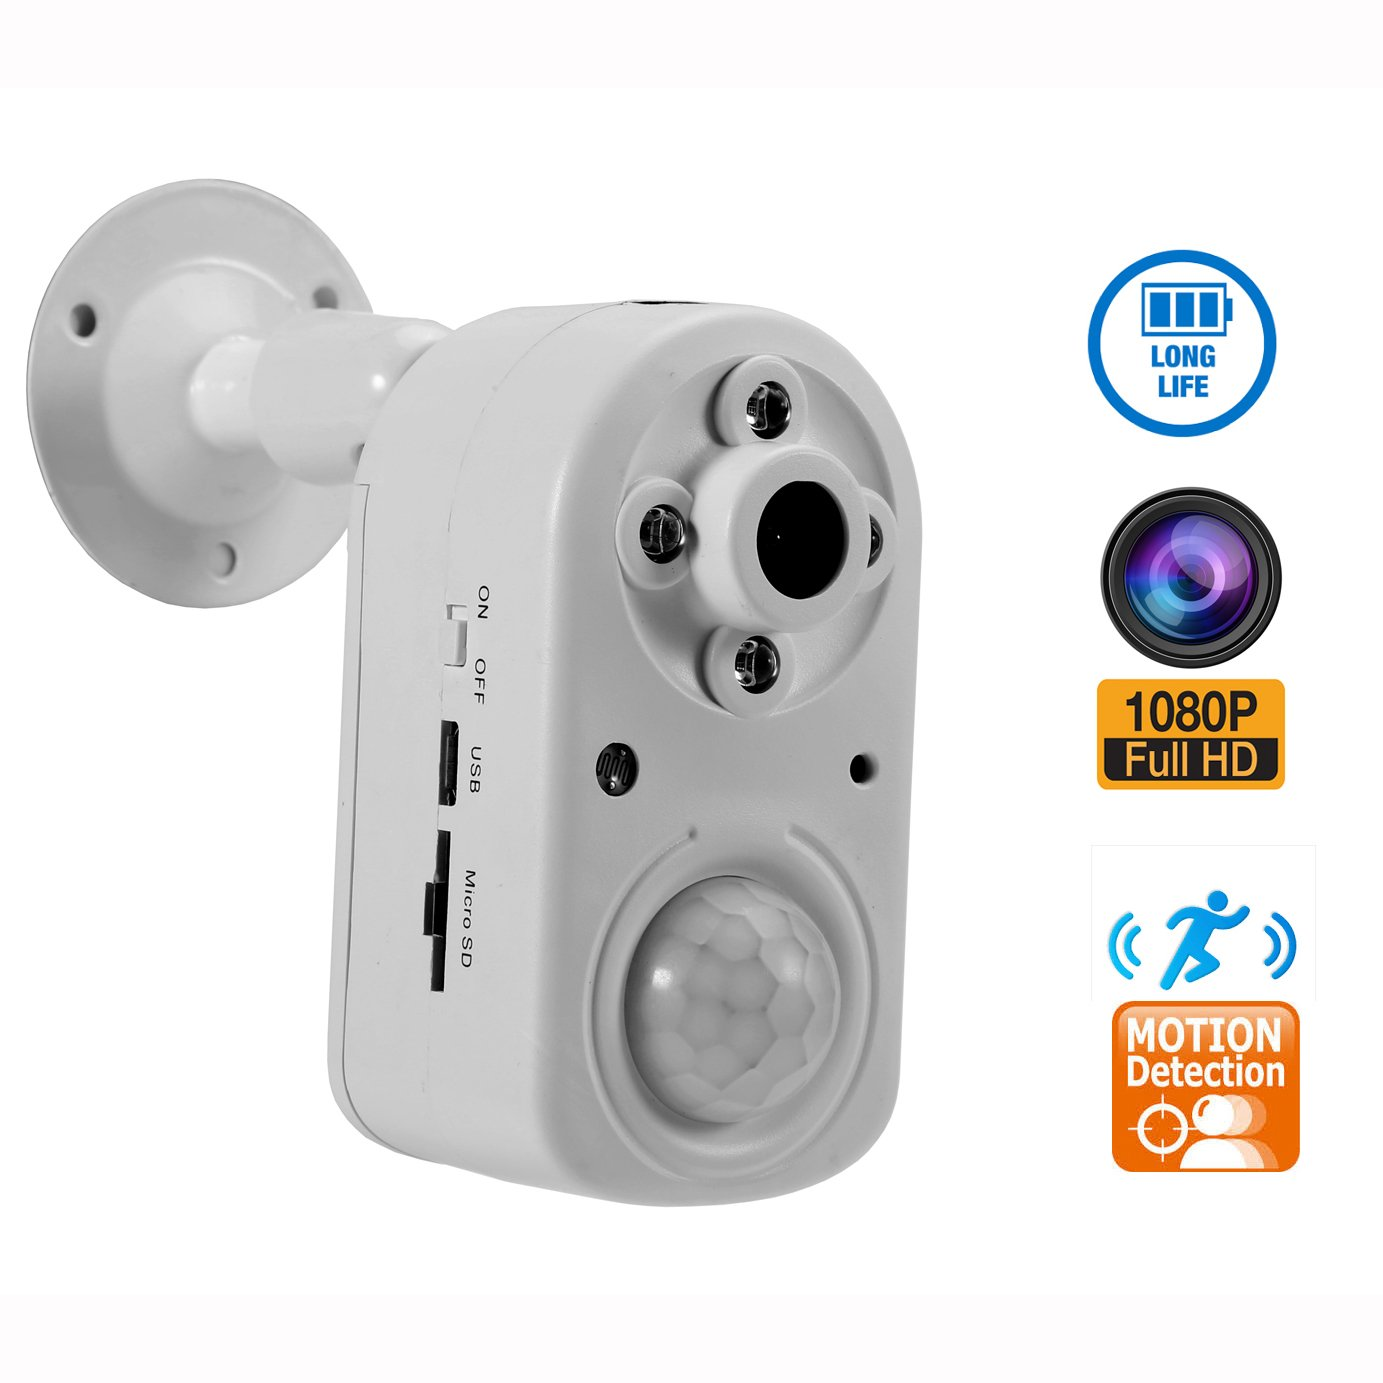 Motion Detection Security Camera,eoqo 1080P PIR Sensor Camera with Night Vision,Battery Powered Home Surveillance Camera Support 24 Months Standby Time